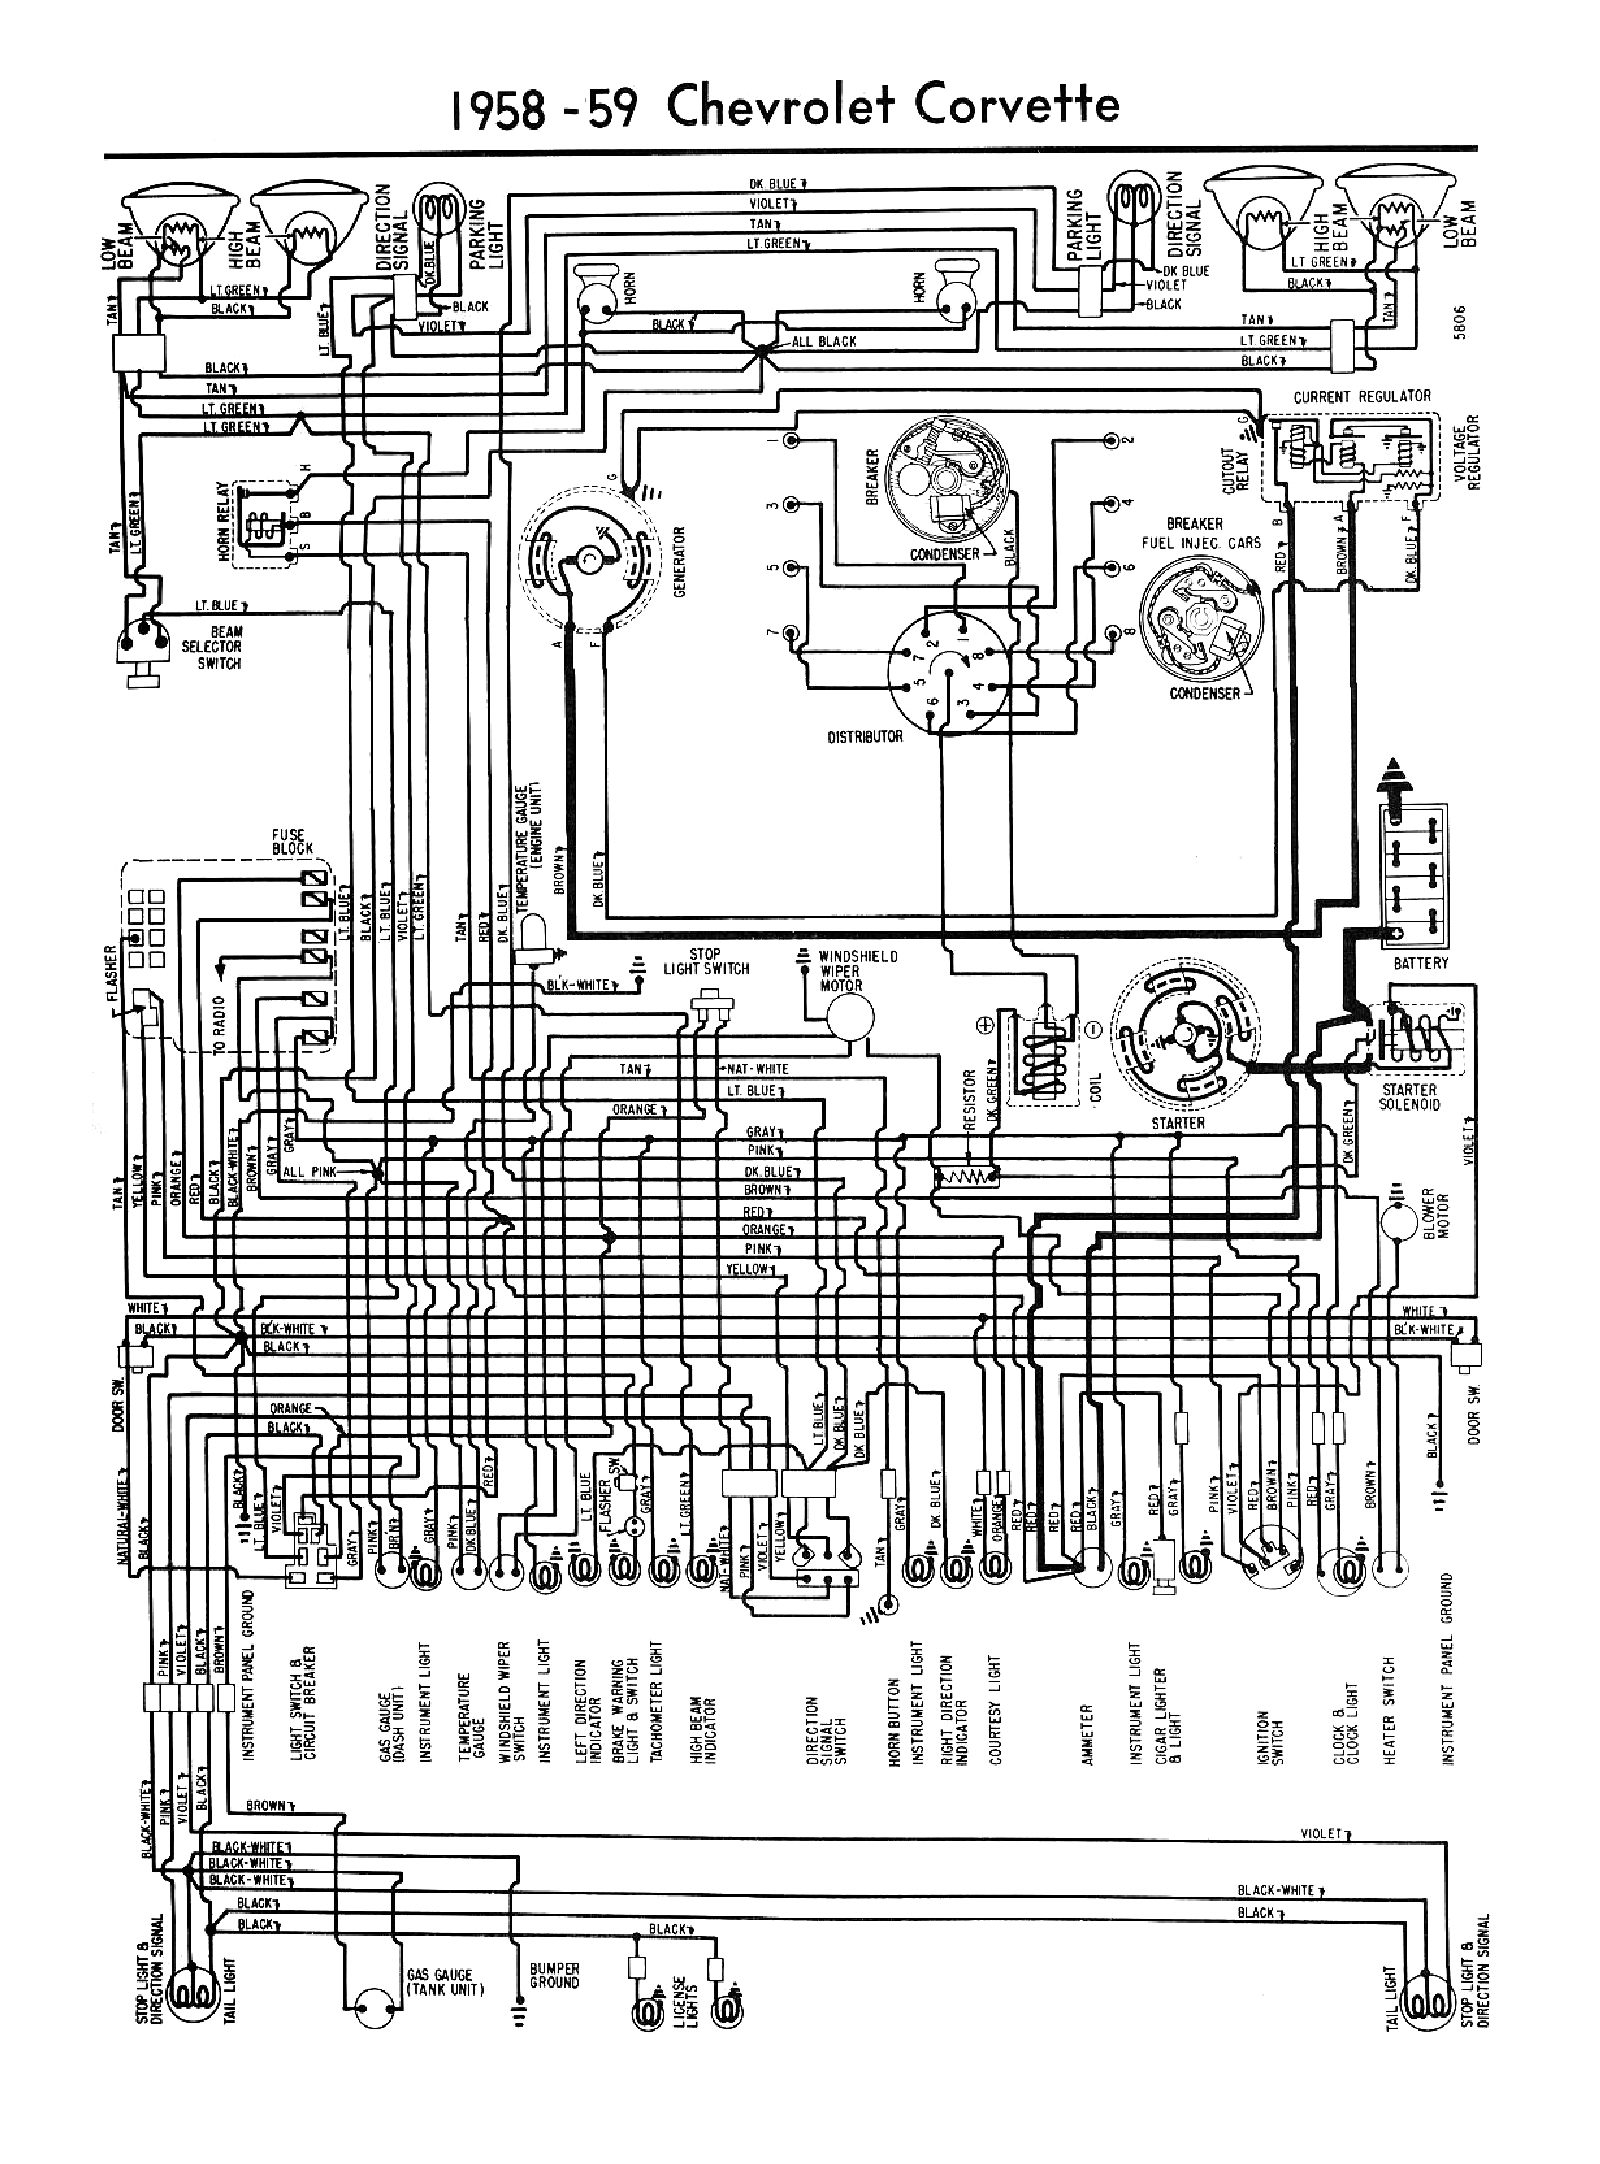 Chevy Wiring Diagrams 1958 283 Chevy Solinoid Wiring Diagram